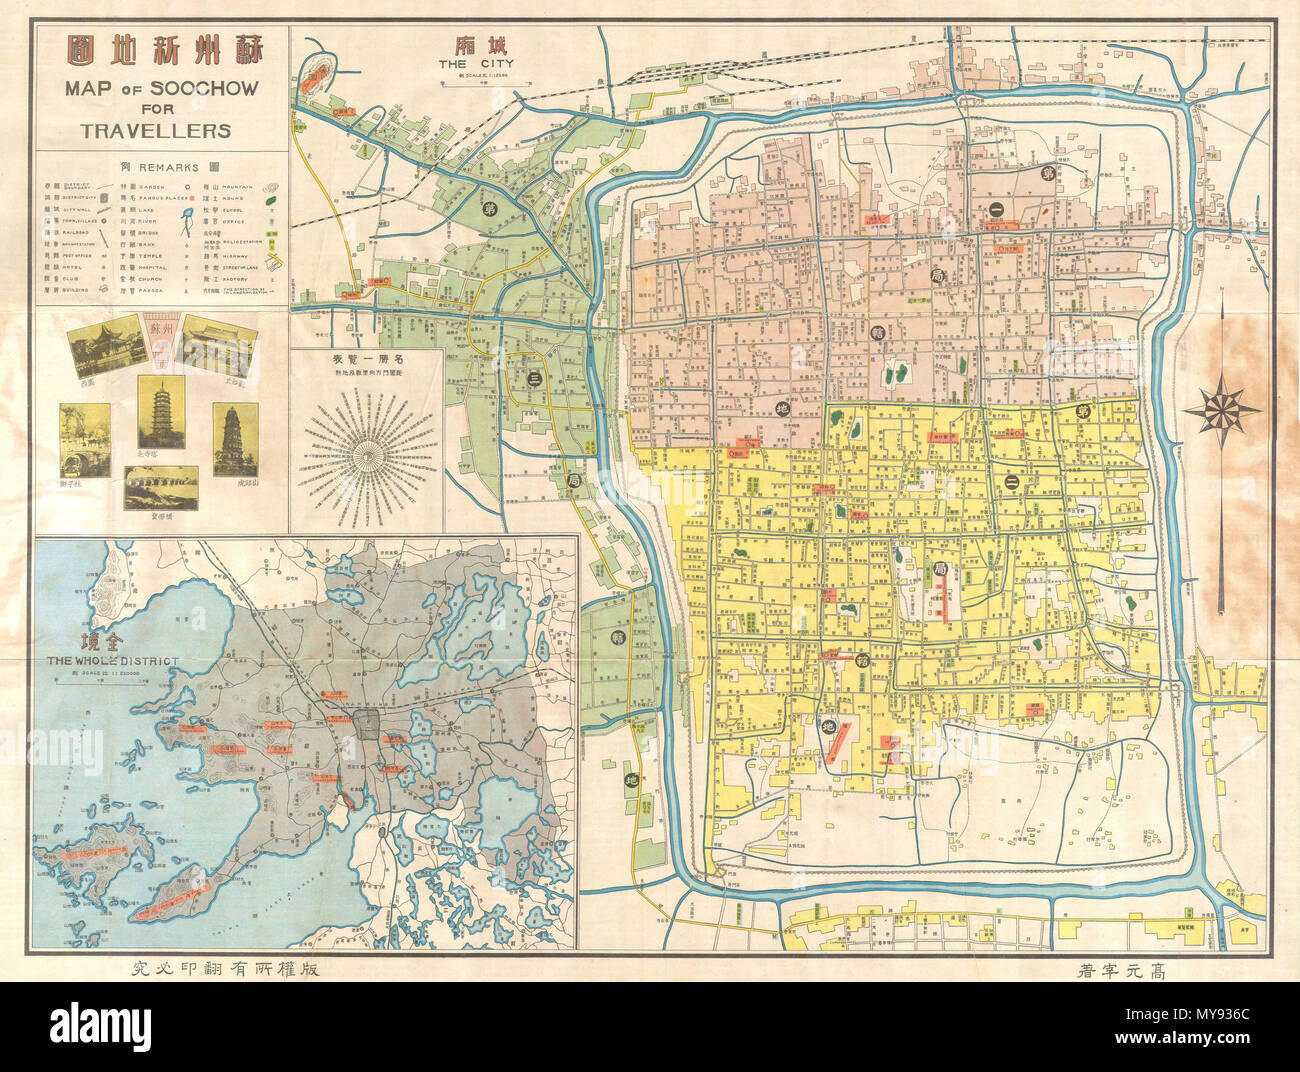 Map Of China Cities In English.Map Of Soochow For Travelers English This Extremely Rare Map Is A